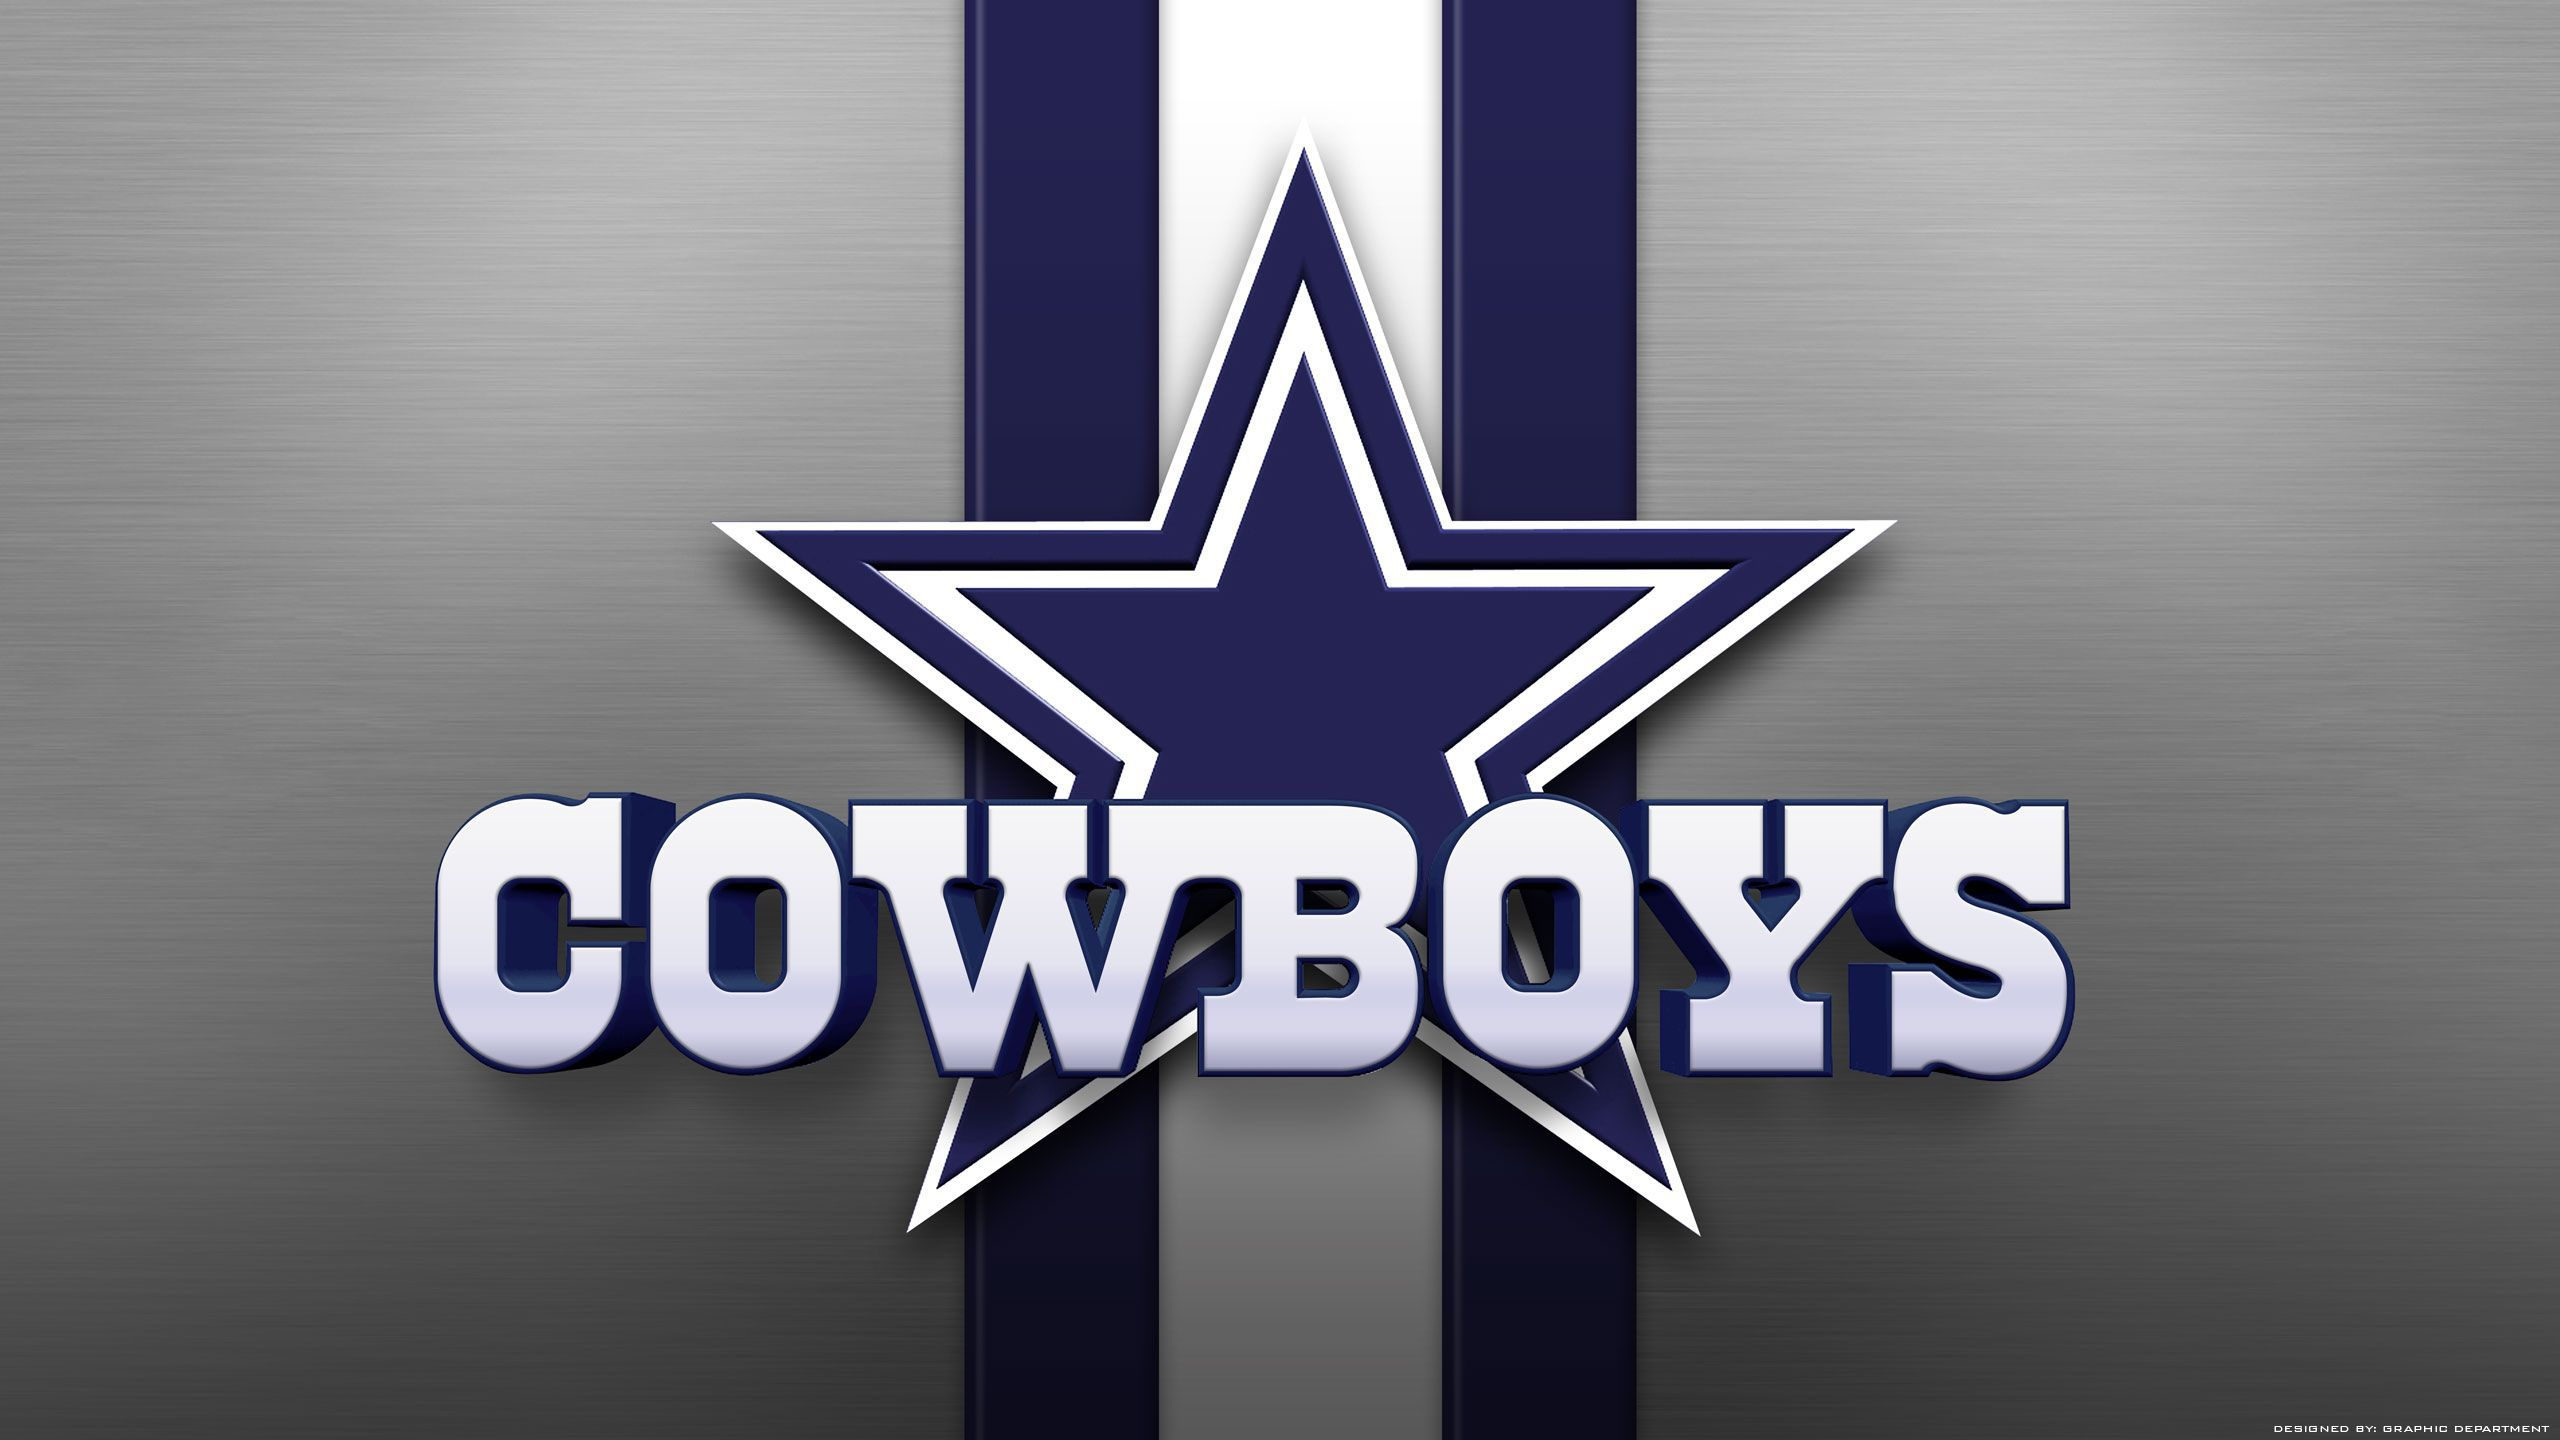 Dallas Cowboys Widescreen